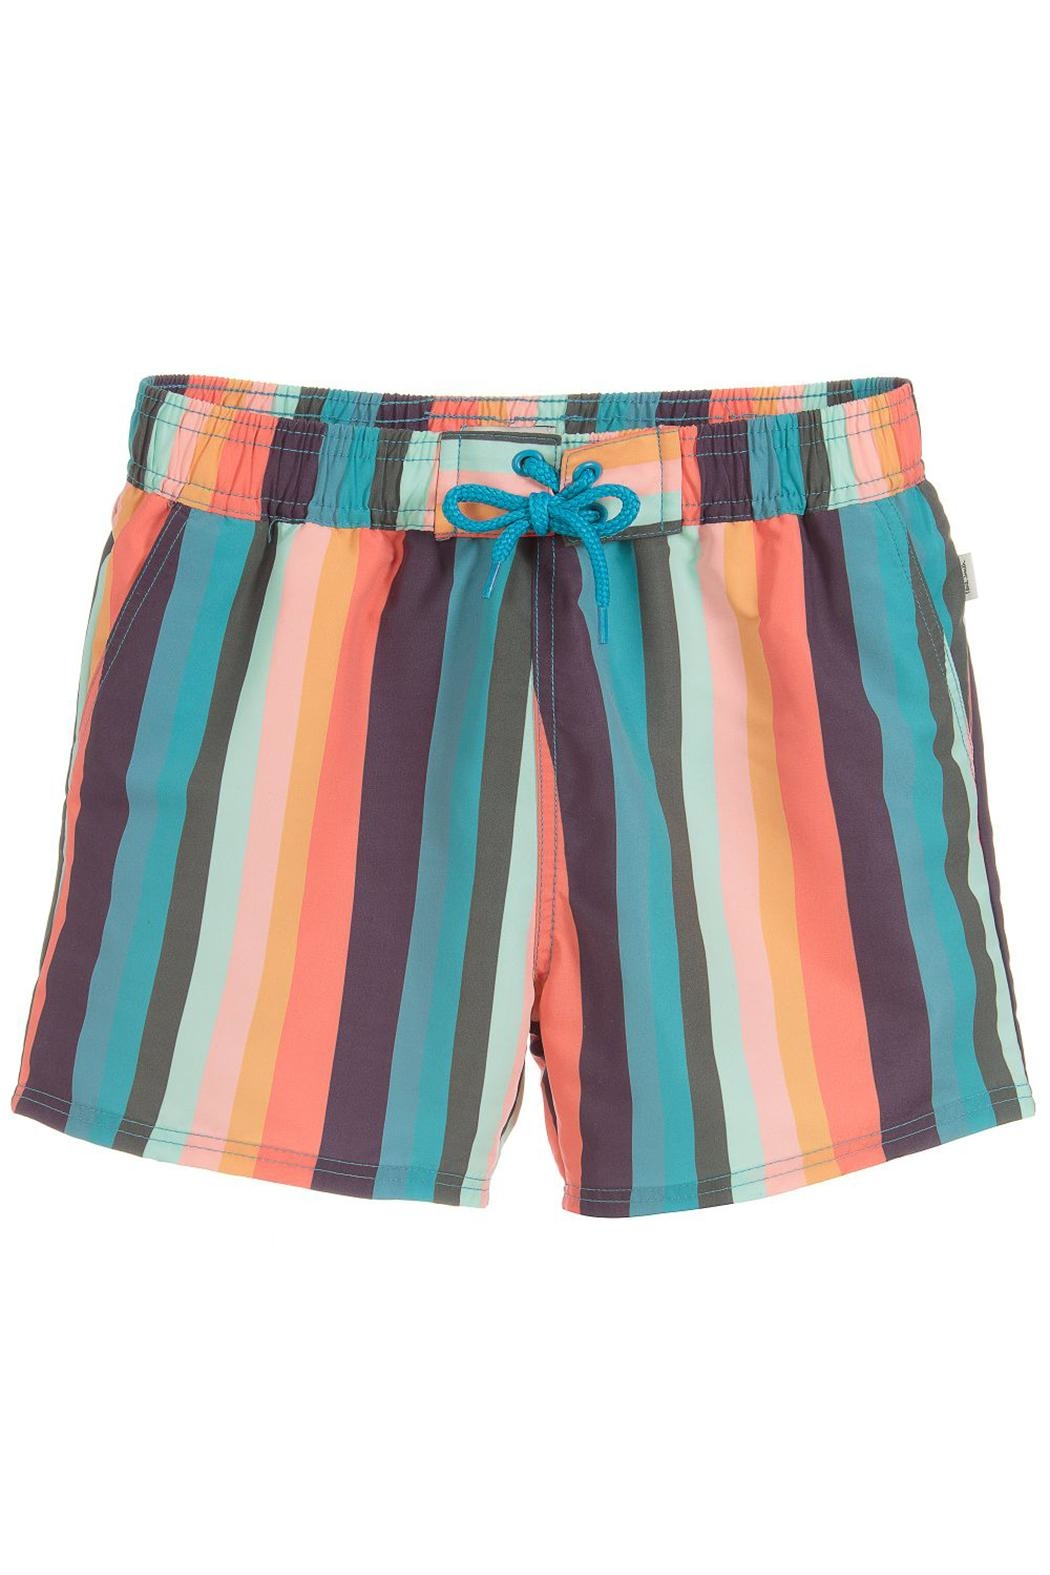 Paul Smith Junior Multicoloured-Striped 'Toshiro' Swim-Shorts - Main Image